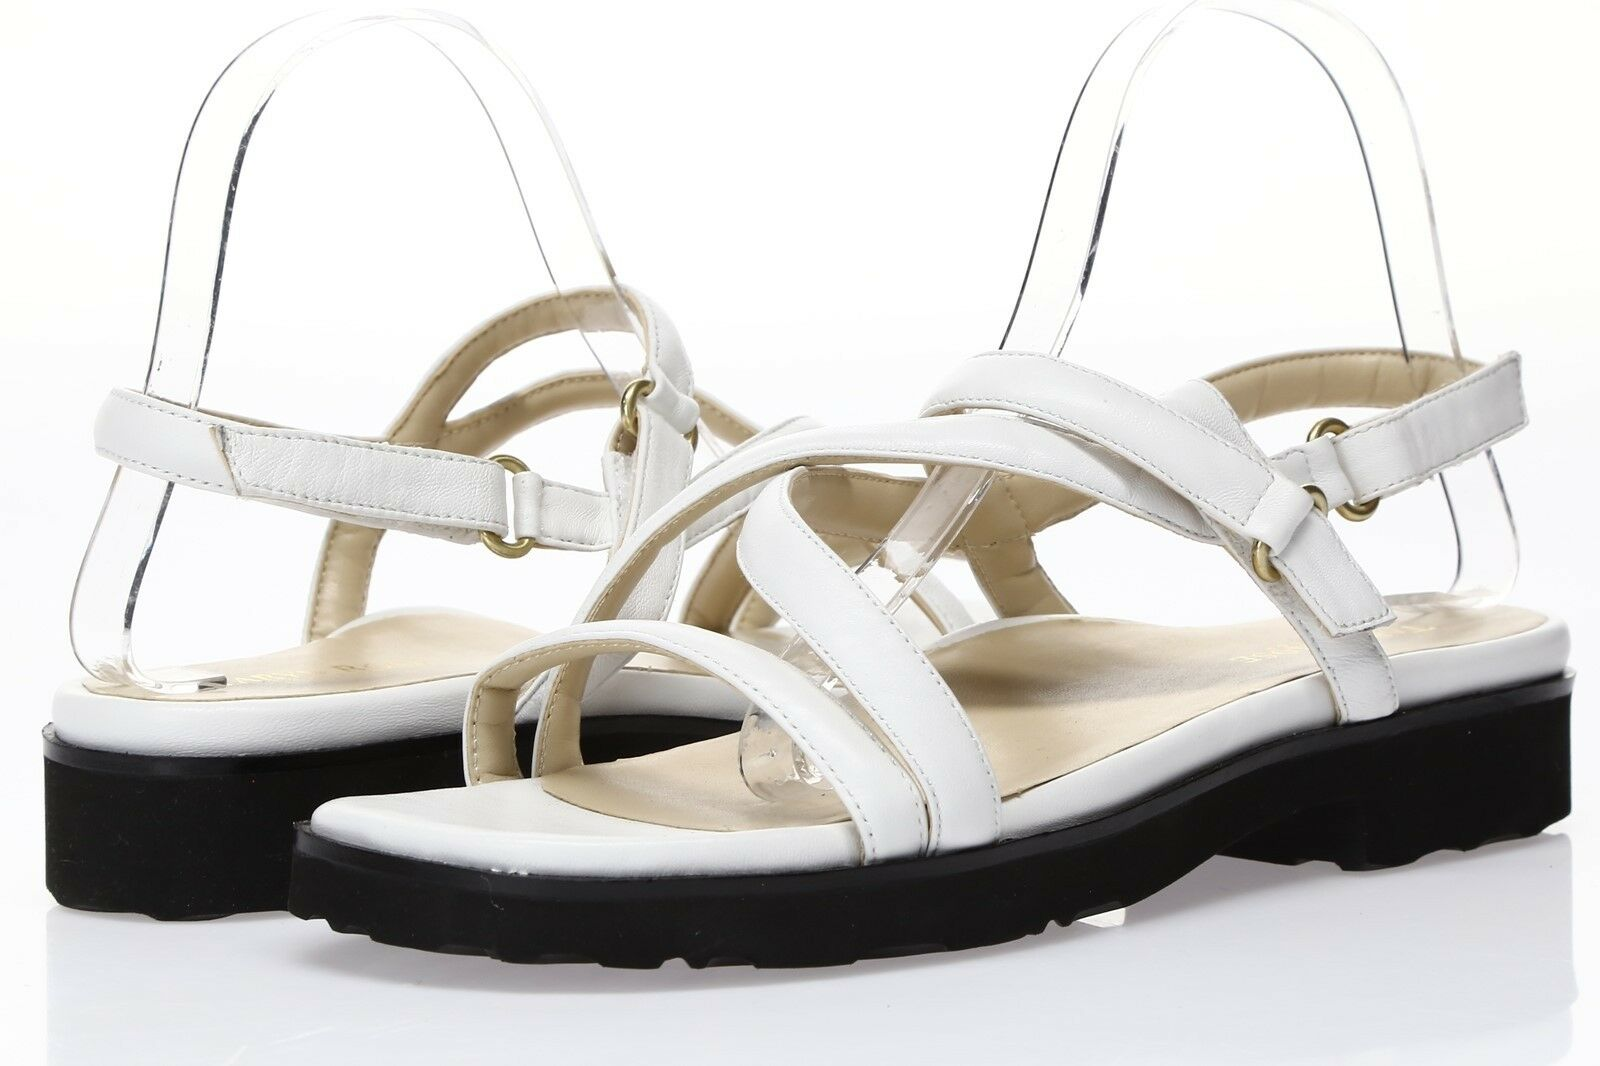 TARYN pink Womens 'Taylor' White Leather Strappy Sandals Sz 10 M - 231331